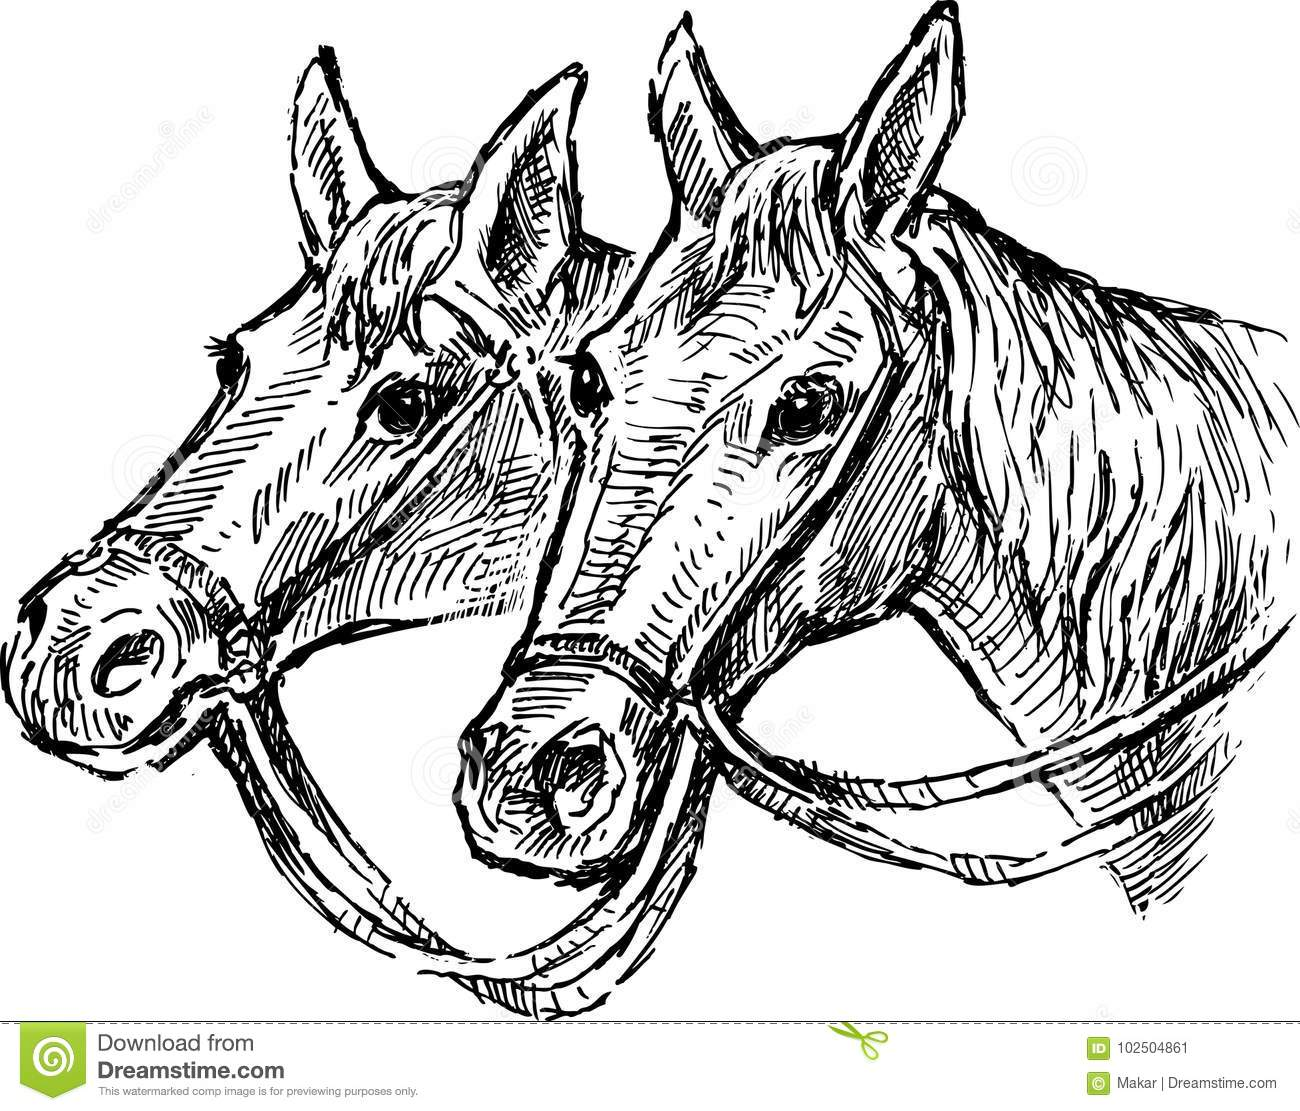 The heads of two horses stock vector. Illustration of